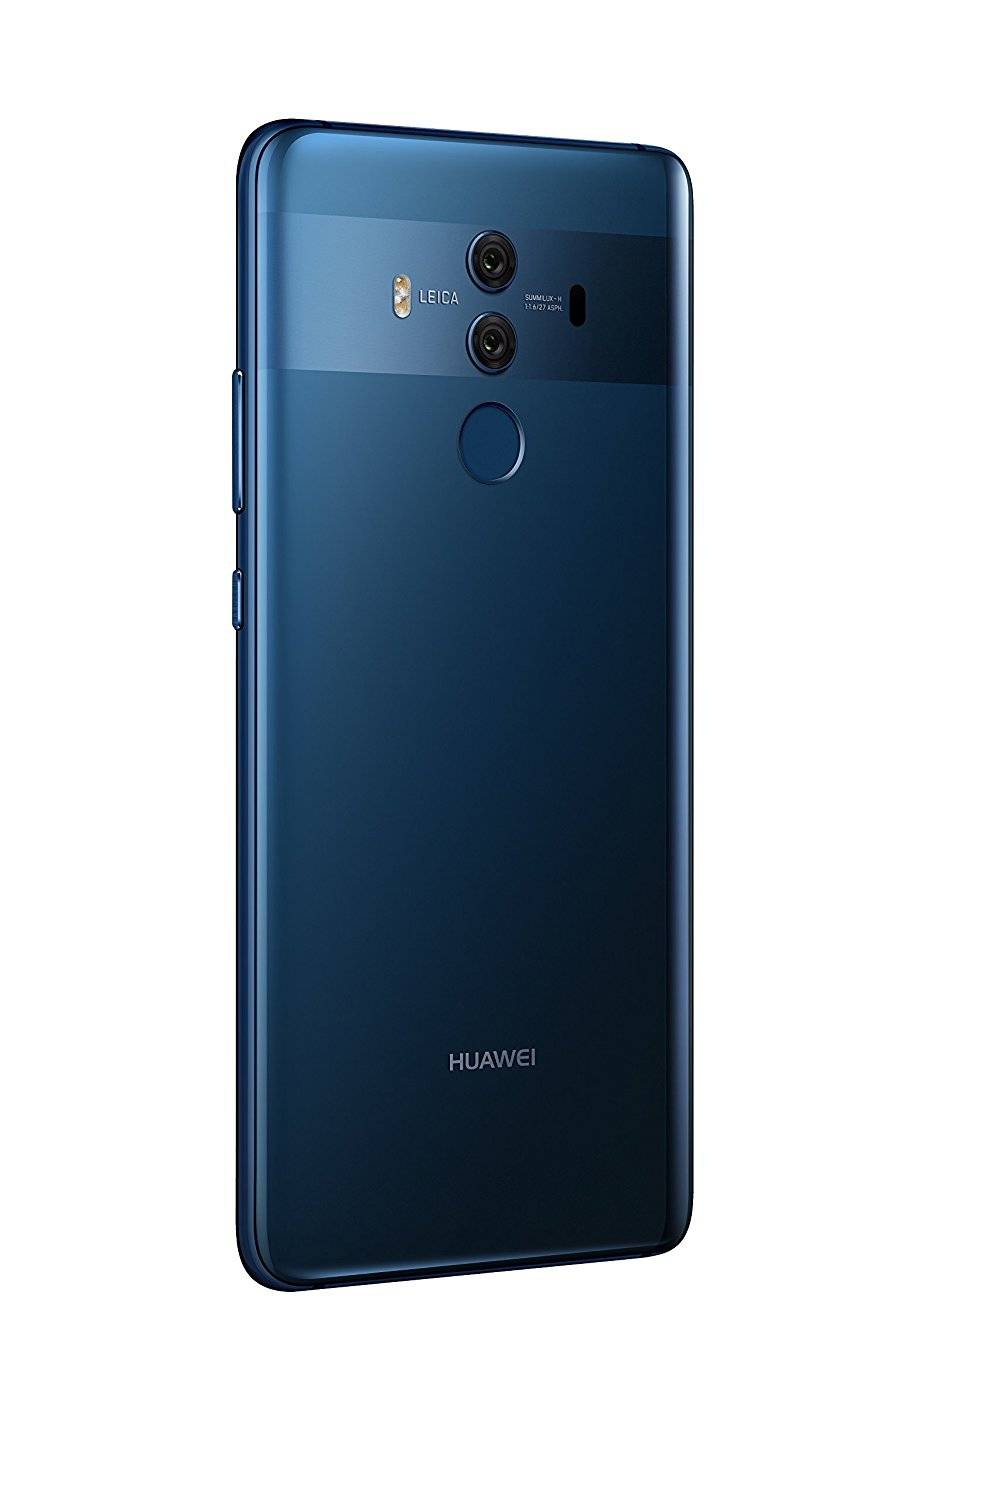 Huawei Mate 10 Pro now discounted on Amazon - Android Community